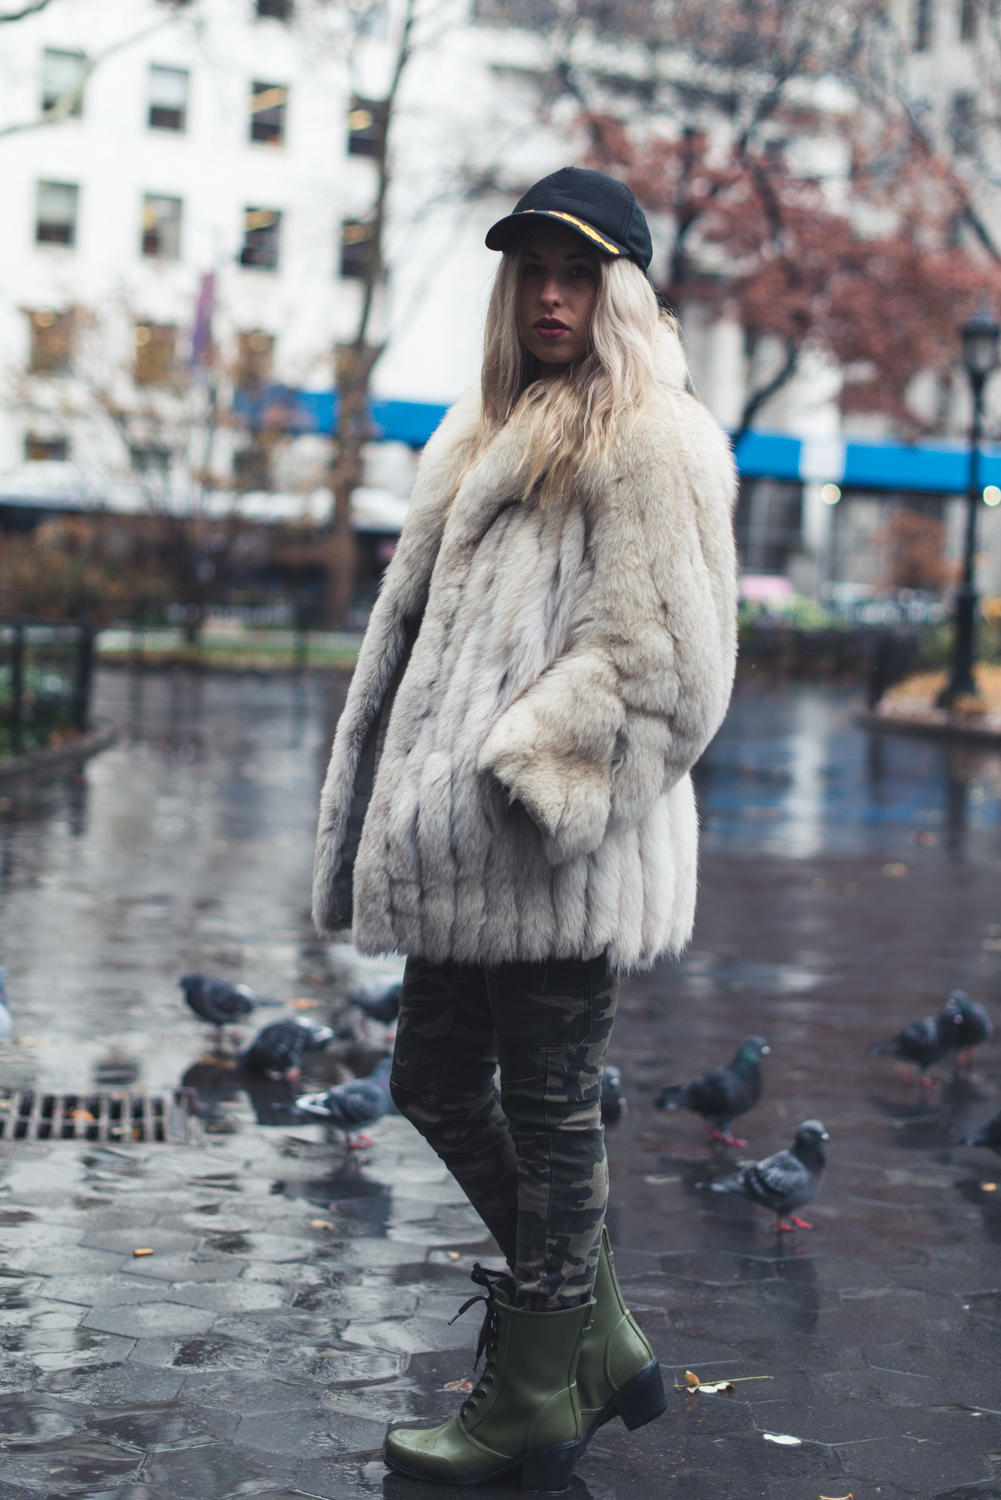 The Lady K 187 La Amp Nyc Based Fashion Blogger Stylist And